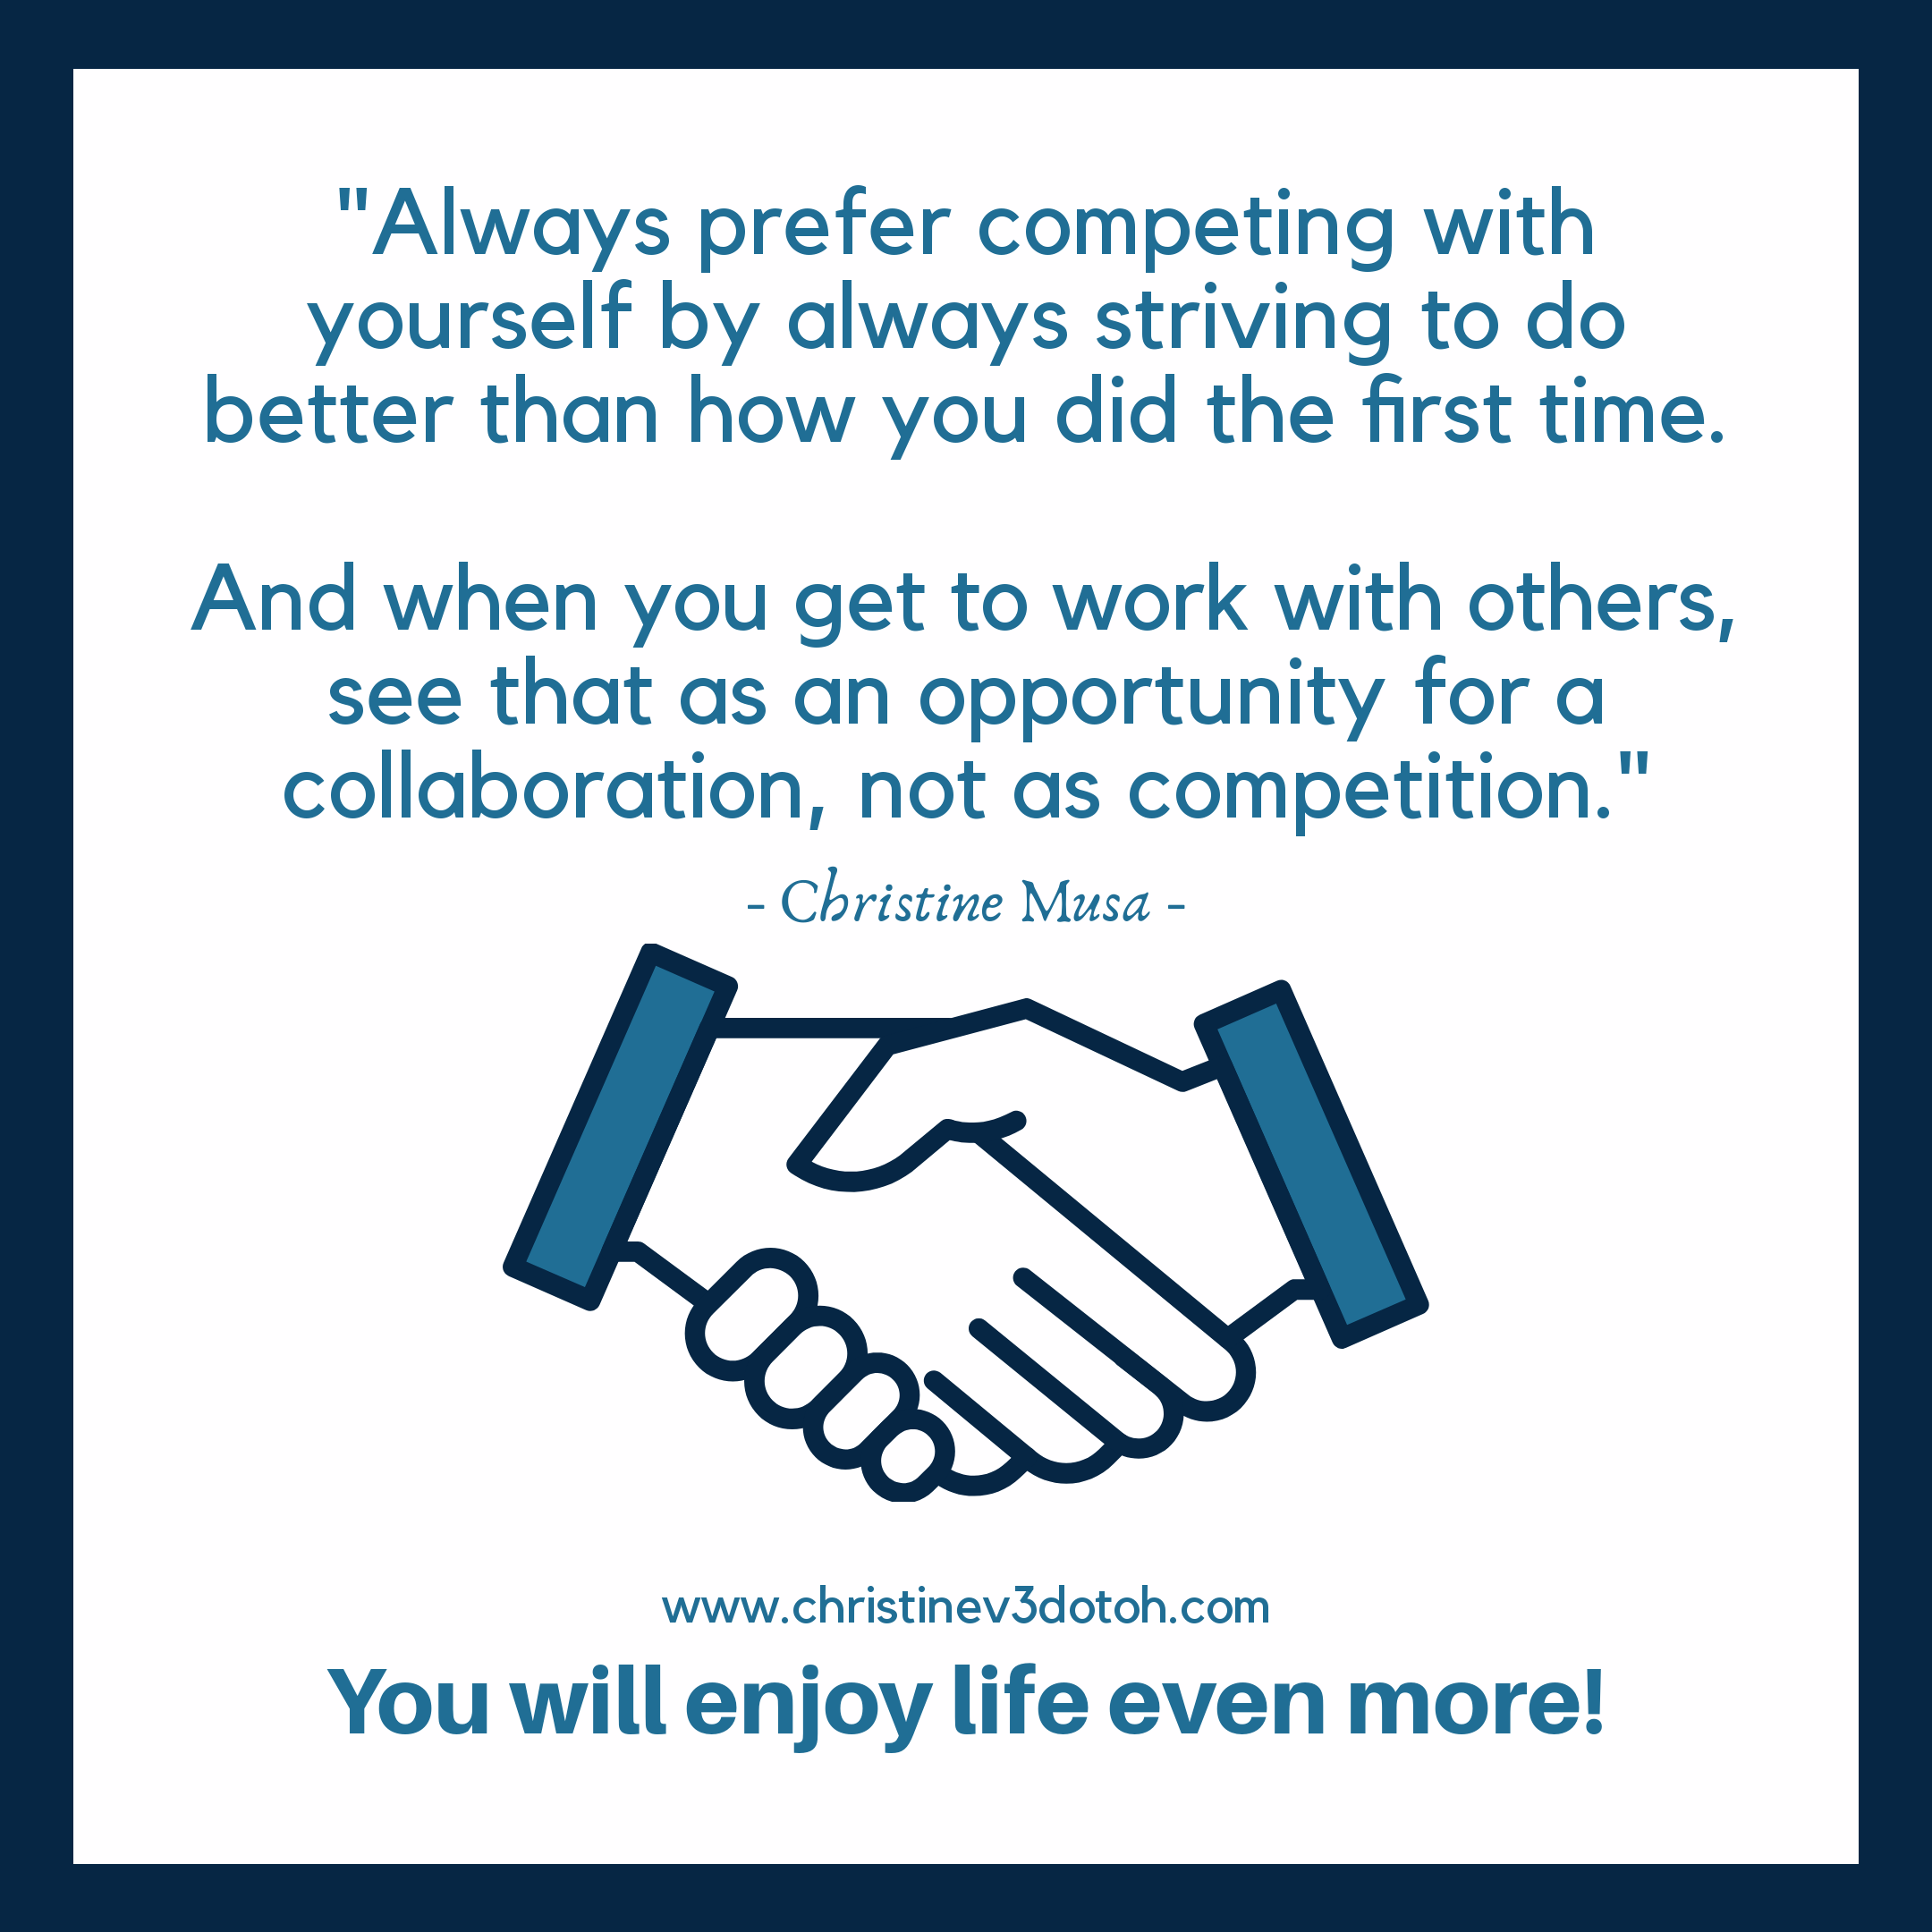 115.-Prefer-Competing-With-Your-Own-Self